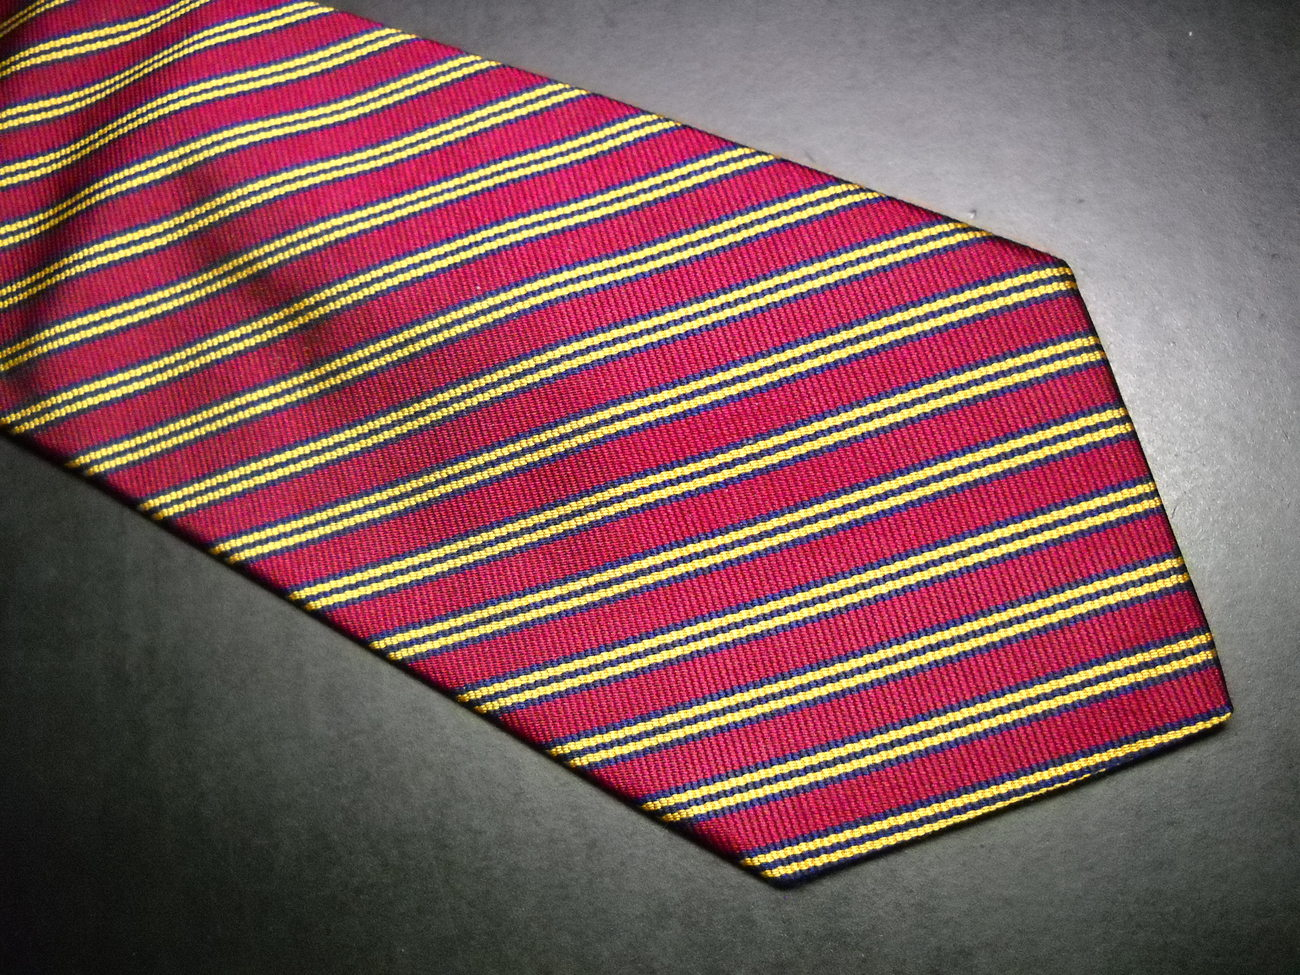 Brooks Brothers Makers Neck Tie Silk Woven in England Diagonal Stripes